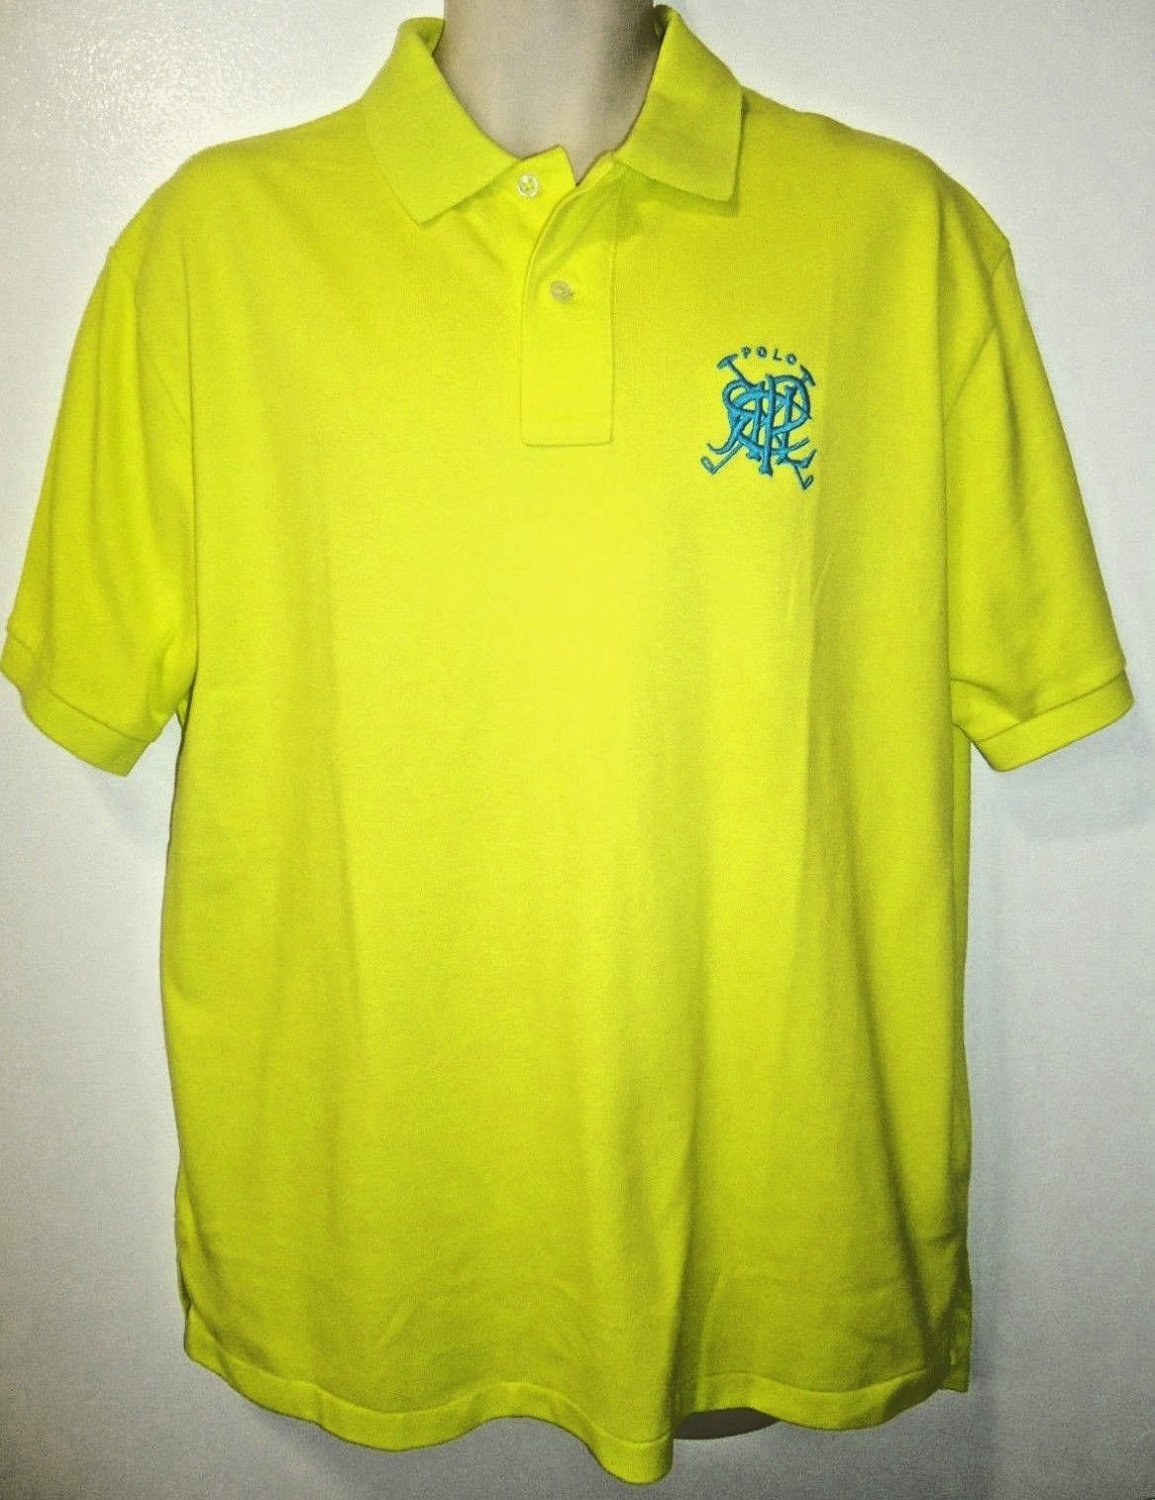 RALPH LAUREN - XL - CROSSED - MALLETS - FLORESCENT - GREEN - POLO - SHIRT - NEW